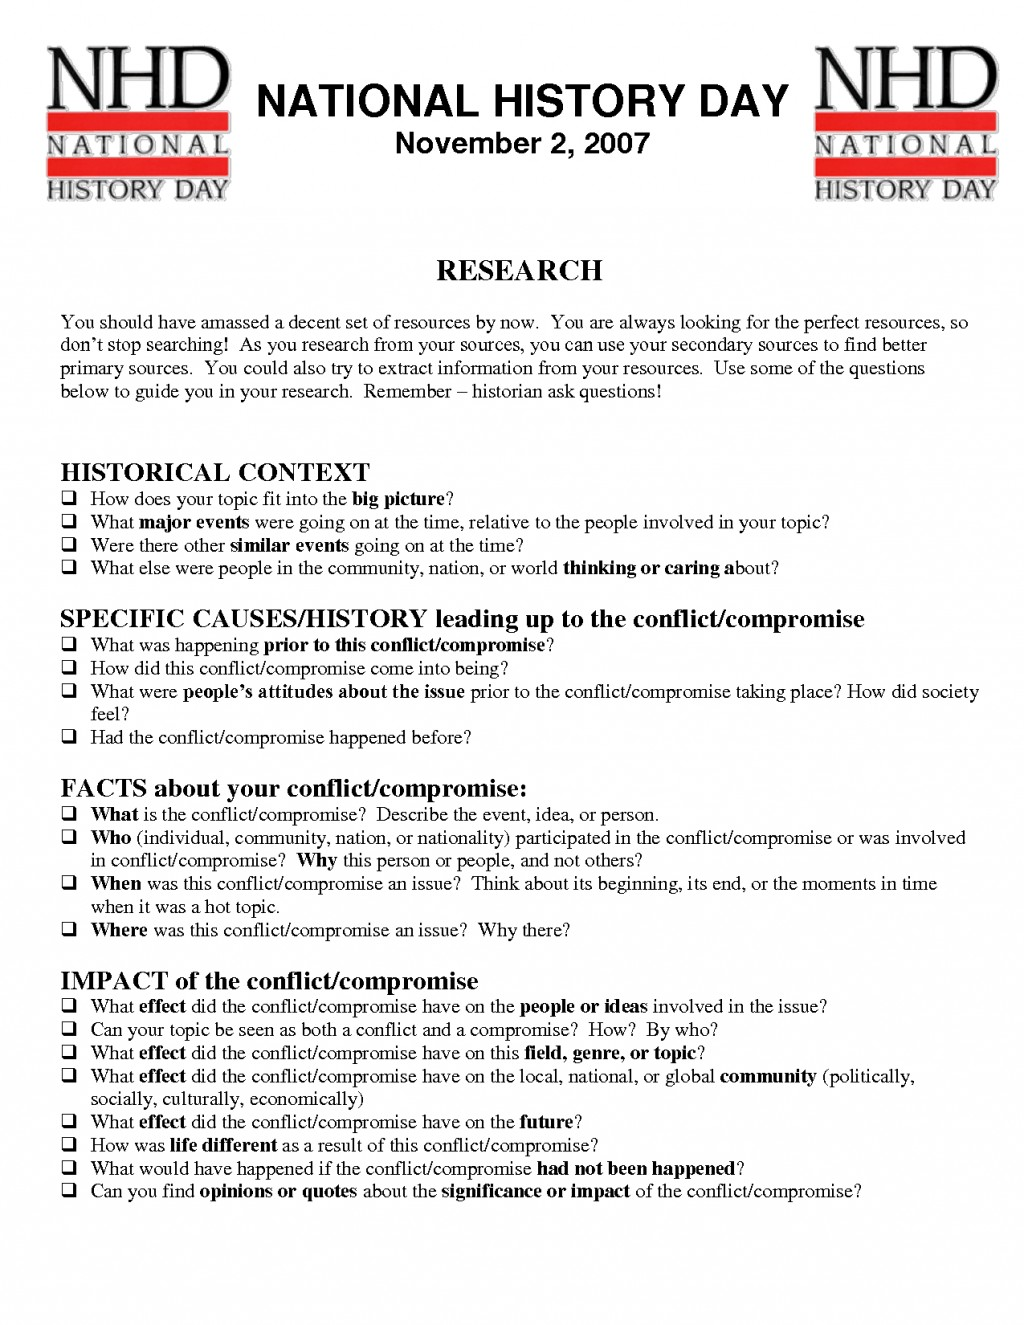 007 College Essays Application Example Of Examples Process Essay Topics L Marvelous High School For Large